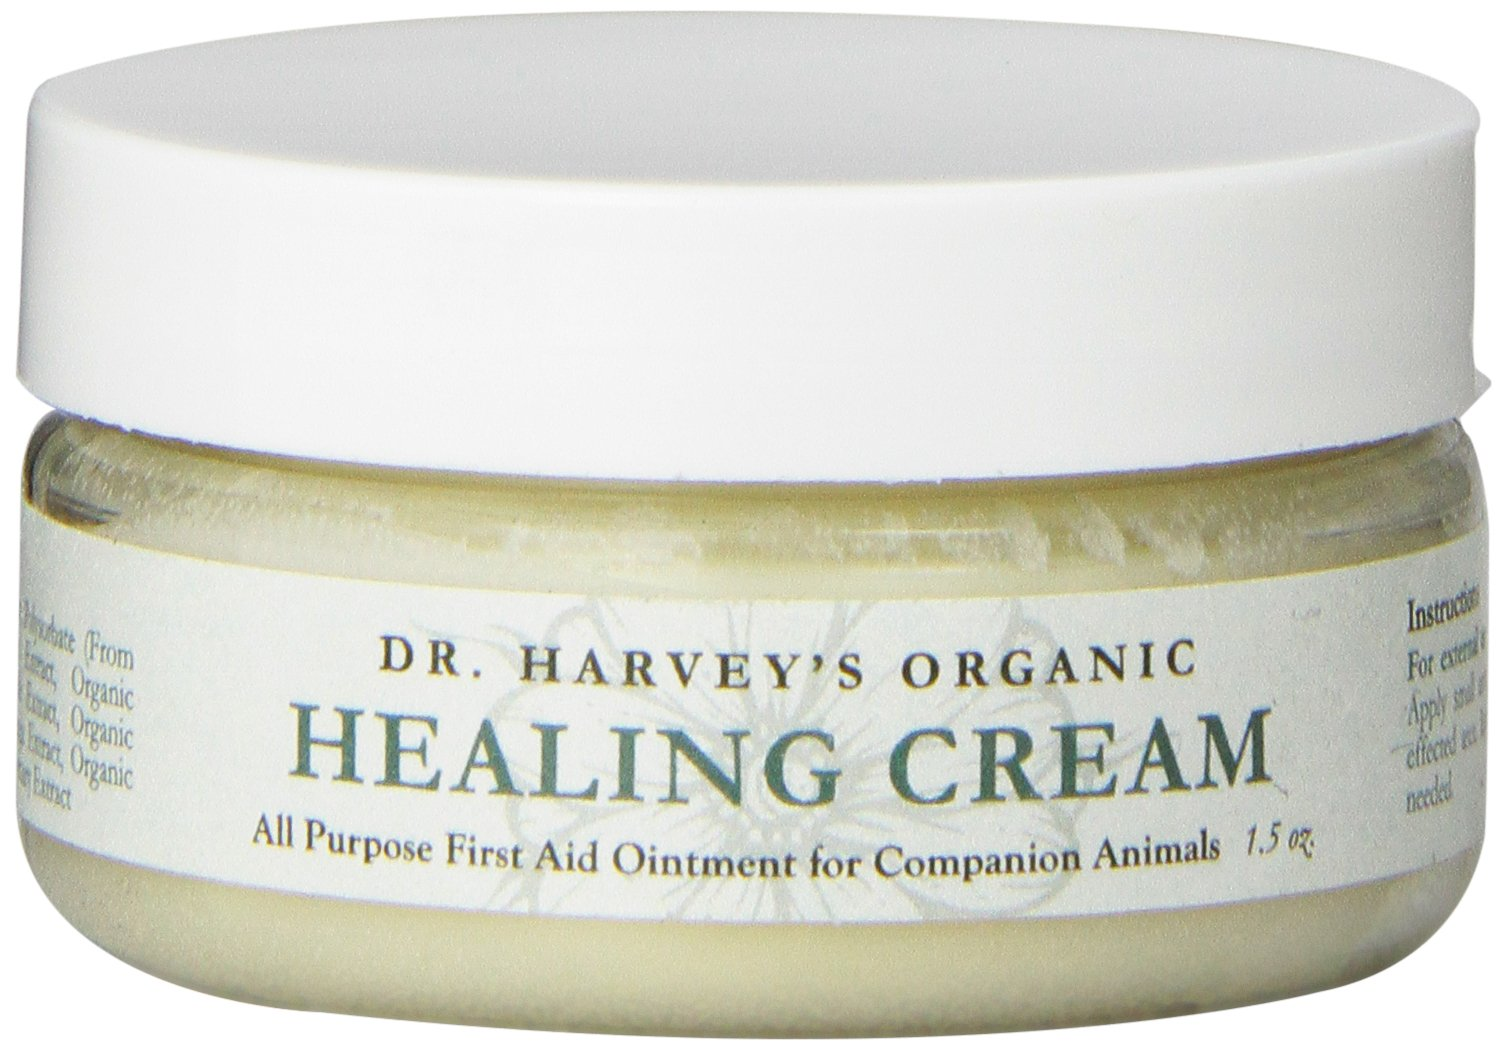 Dr. Harvey's Organic First Aid Healing Cream for Dogs, 1.5-Ounce Jar by Dr. Harvey's